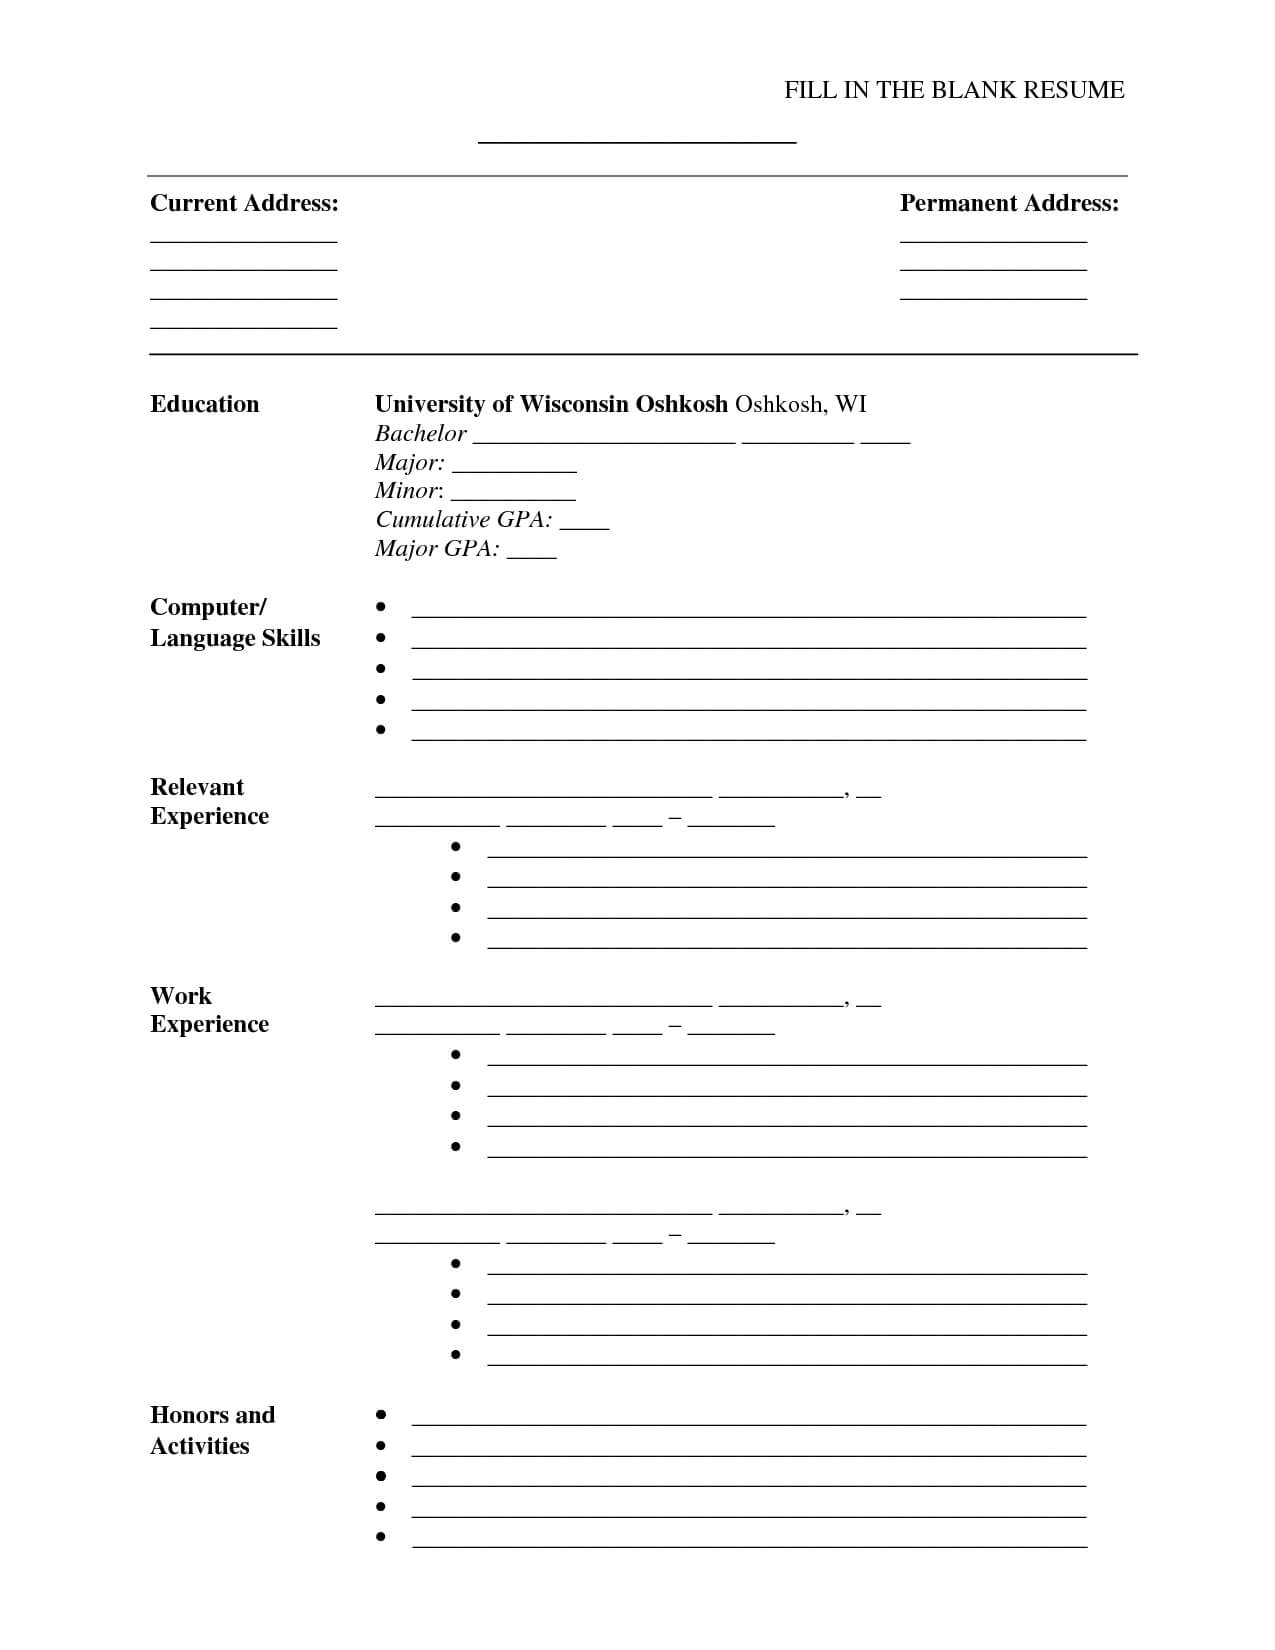 A Cv Template To Fill In | Job Hunt | Sample Resume Format for Blank Resume Templates For Microsoft Word